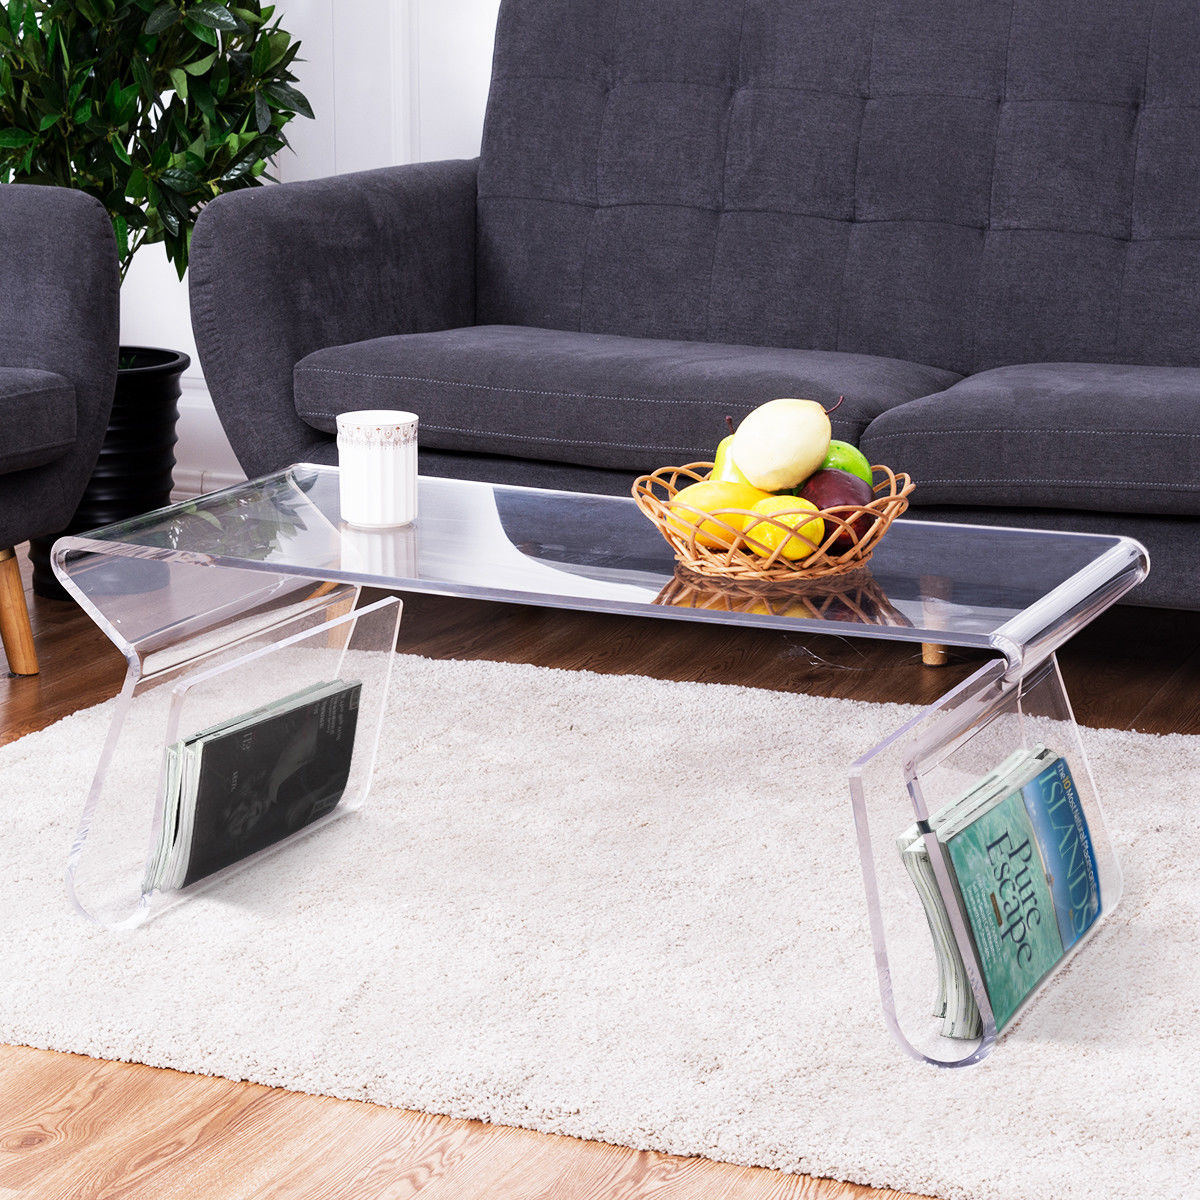 Giantex 38 Clear Acrylic Coffee Table Modern Cocktail Table with Integrated Magazine Rack Living Room Furniture HW56525 onelux x based acrylic plexiglass acrylic dining table lucite perpex square cocktail tables